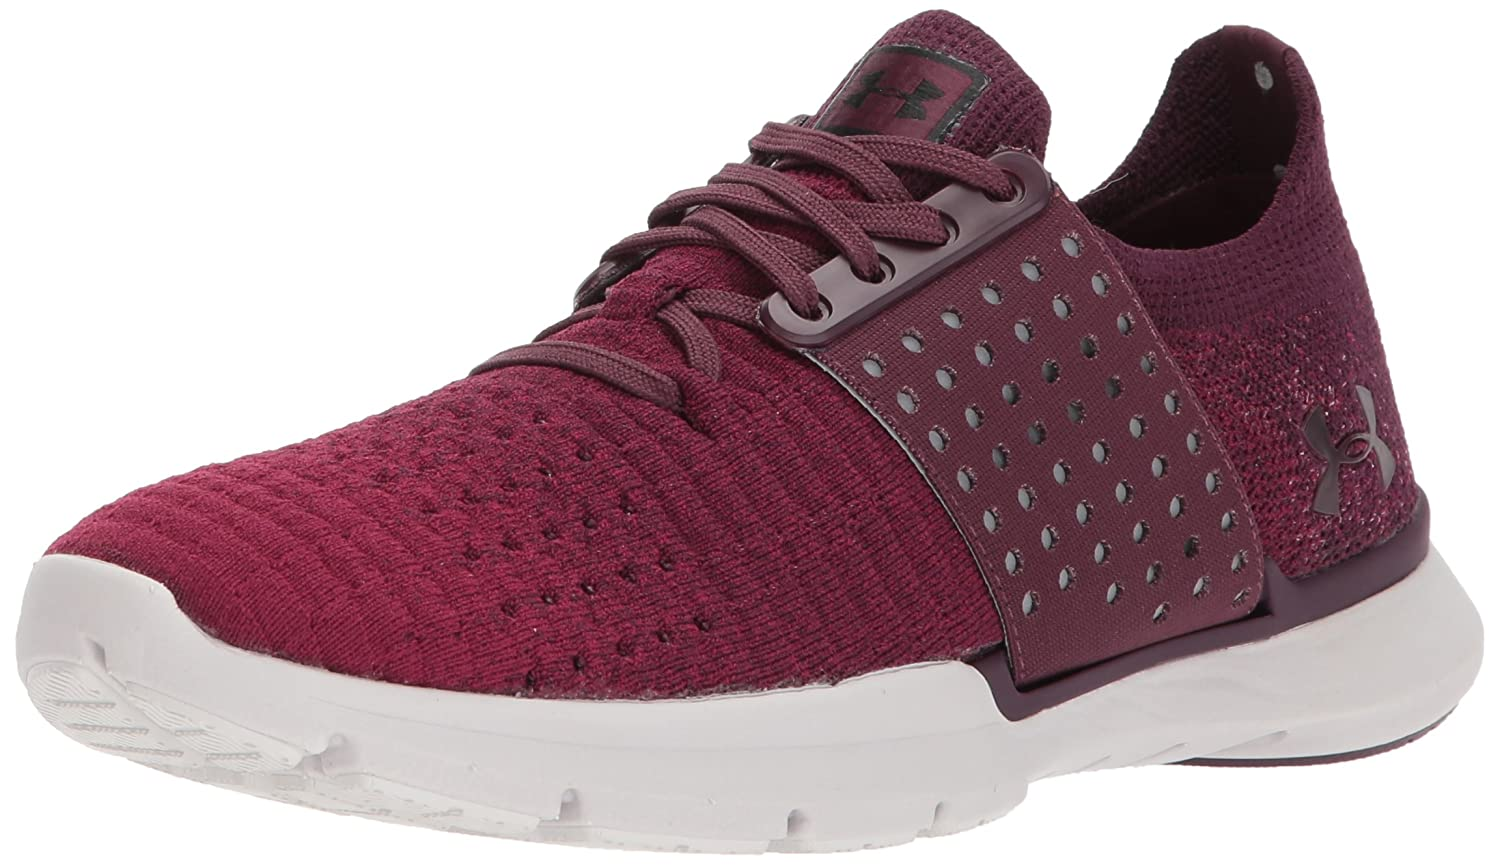 Under Armour Women's Speedform Slingwrap Fade Running Shoe B01N6F6OC0 6 M US|Raisin Red (501)/Black Currant